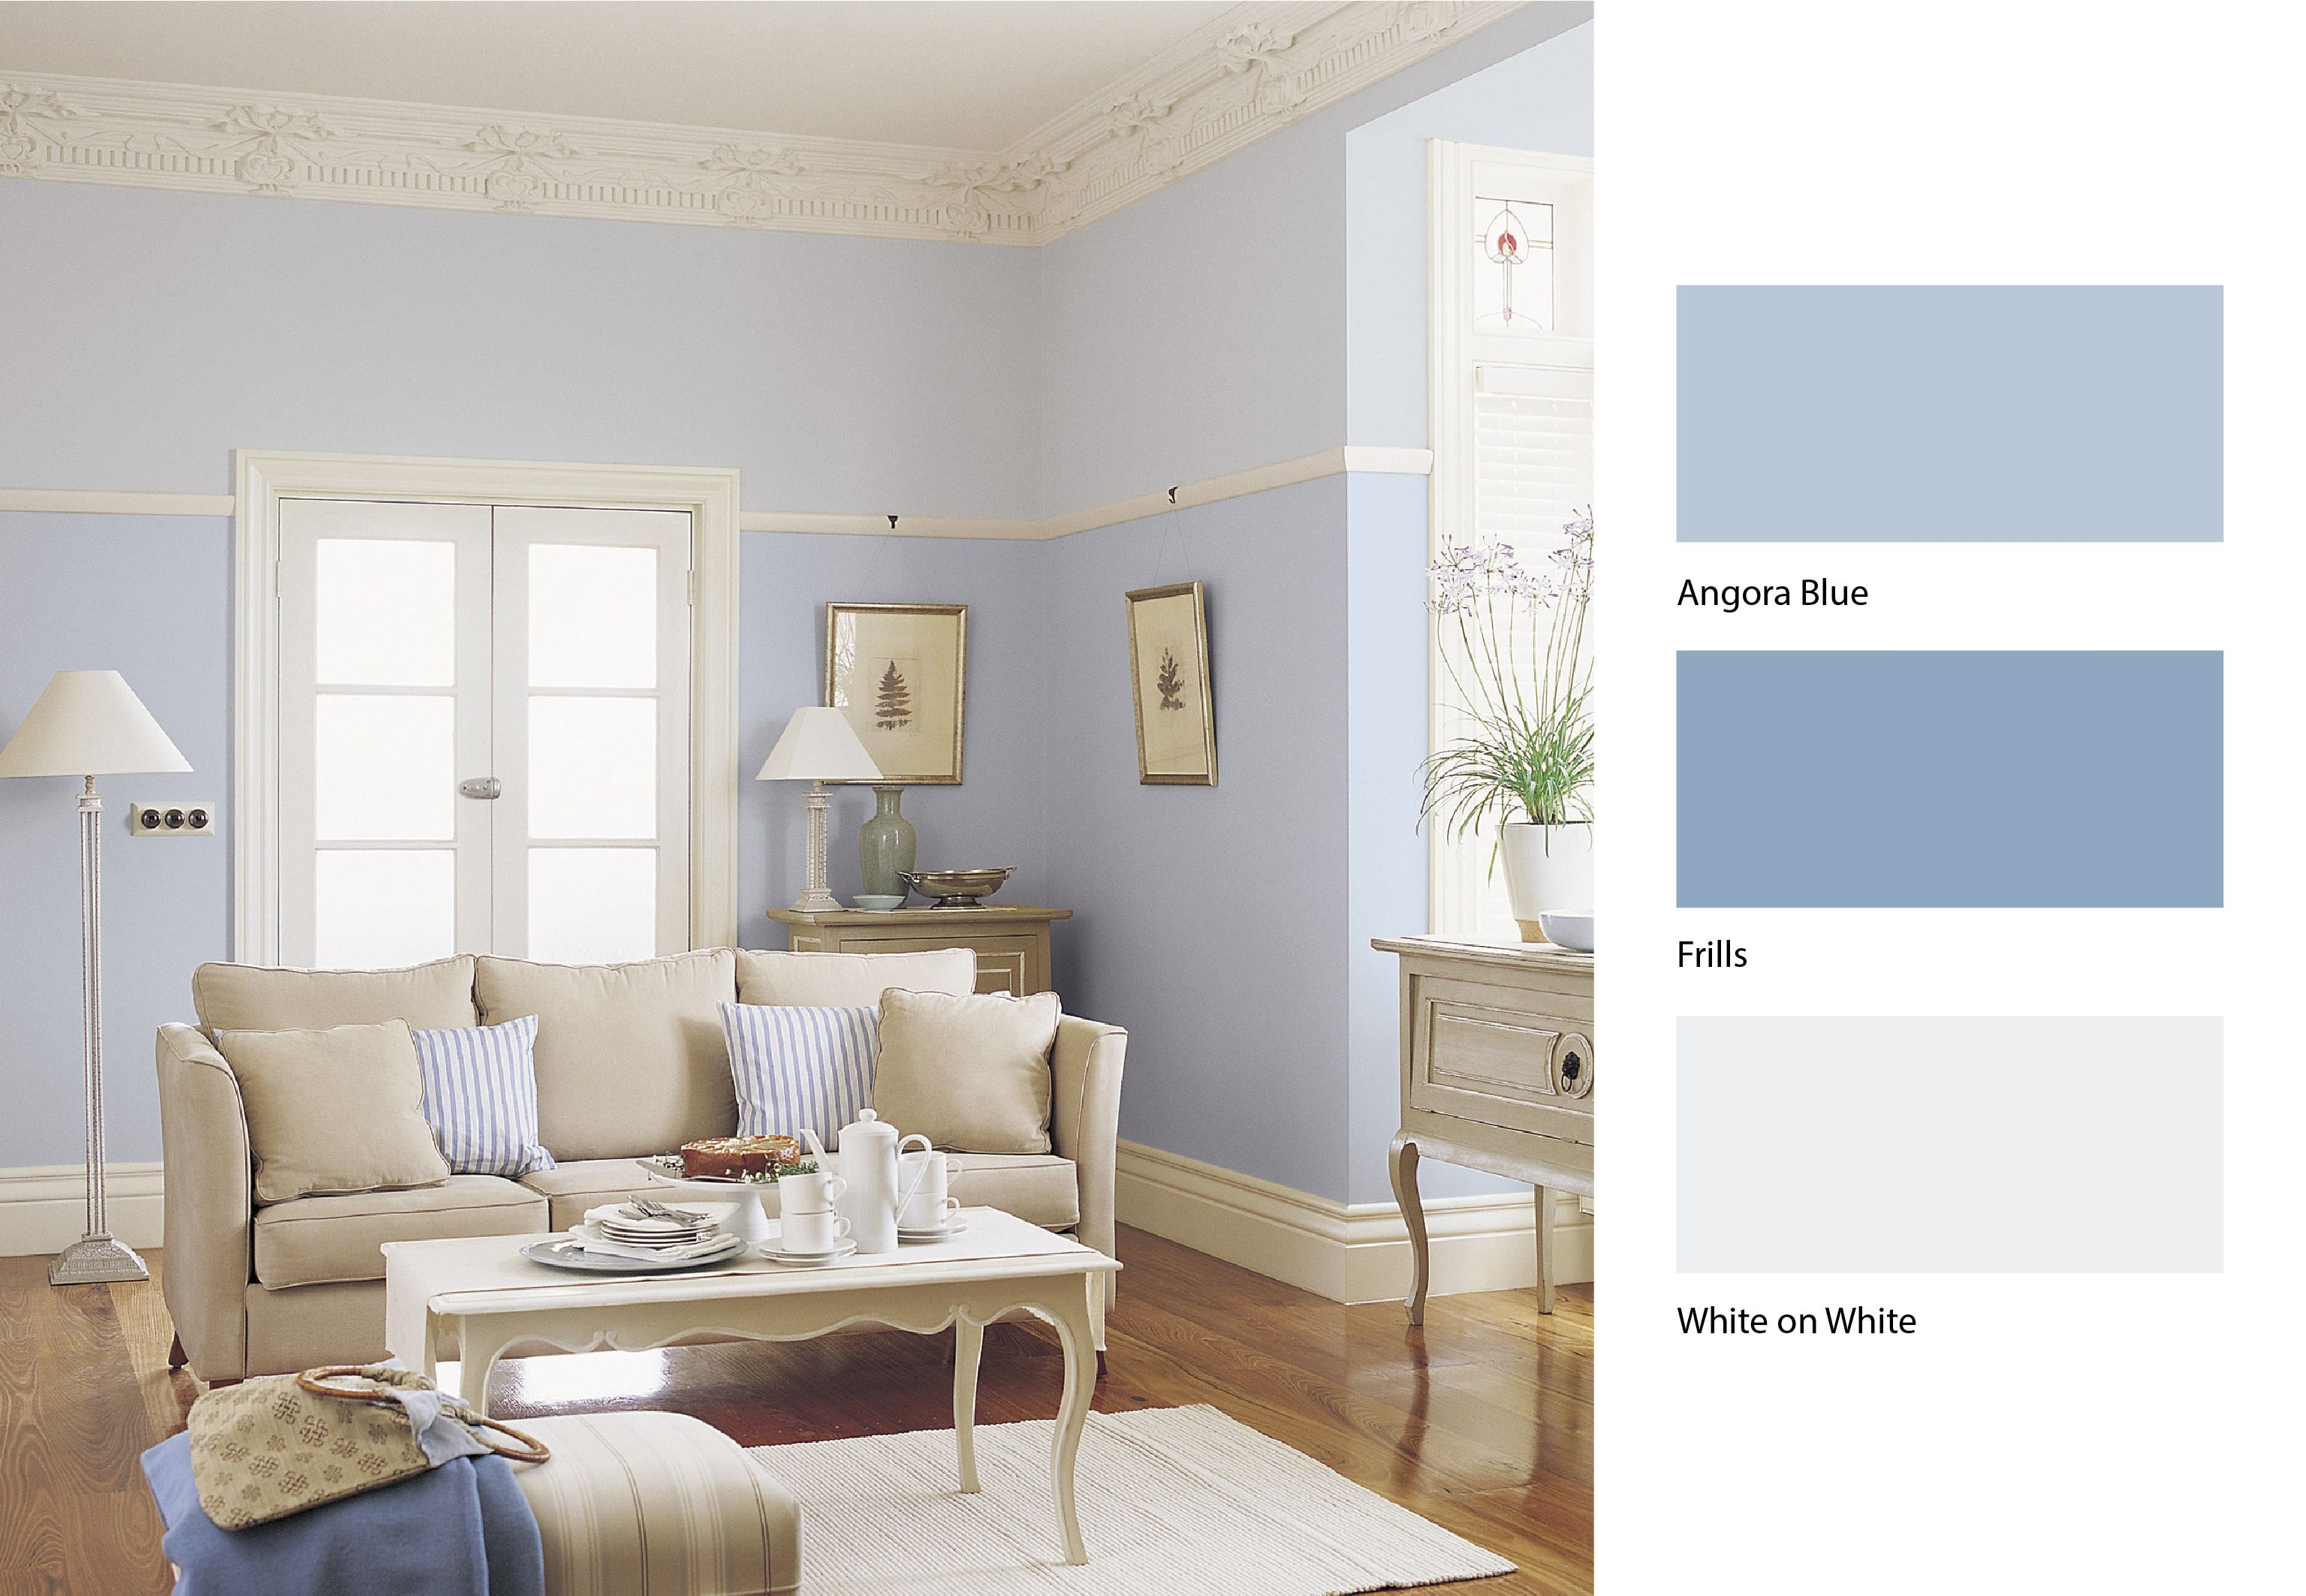 Dulux angora blue dulux frillis and dulux white a for Dulux paint ideas bedroom